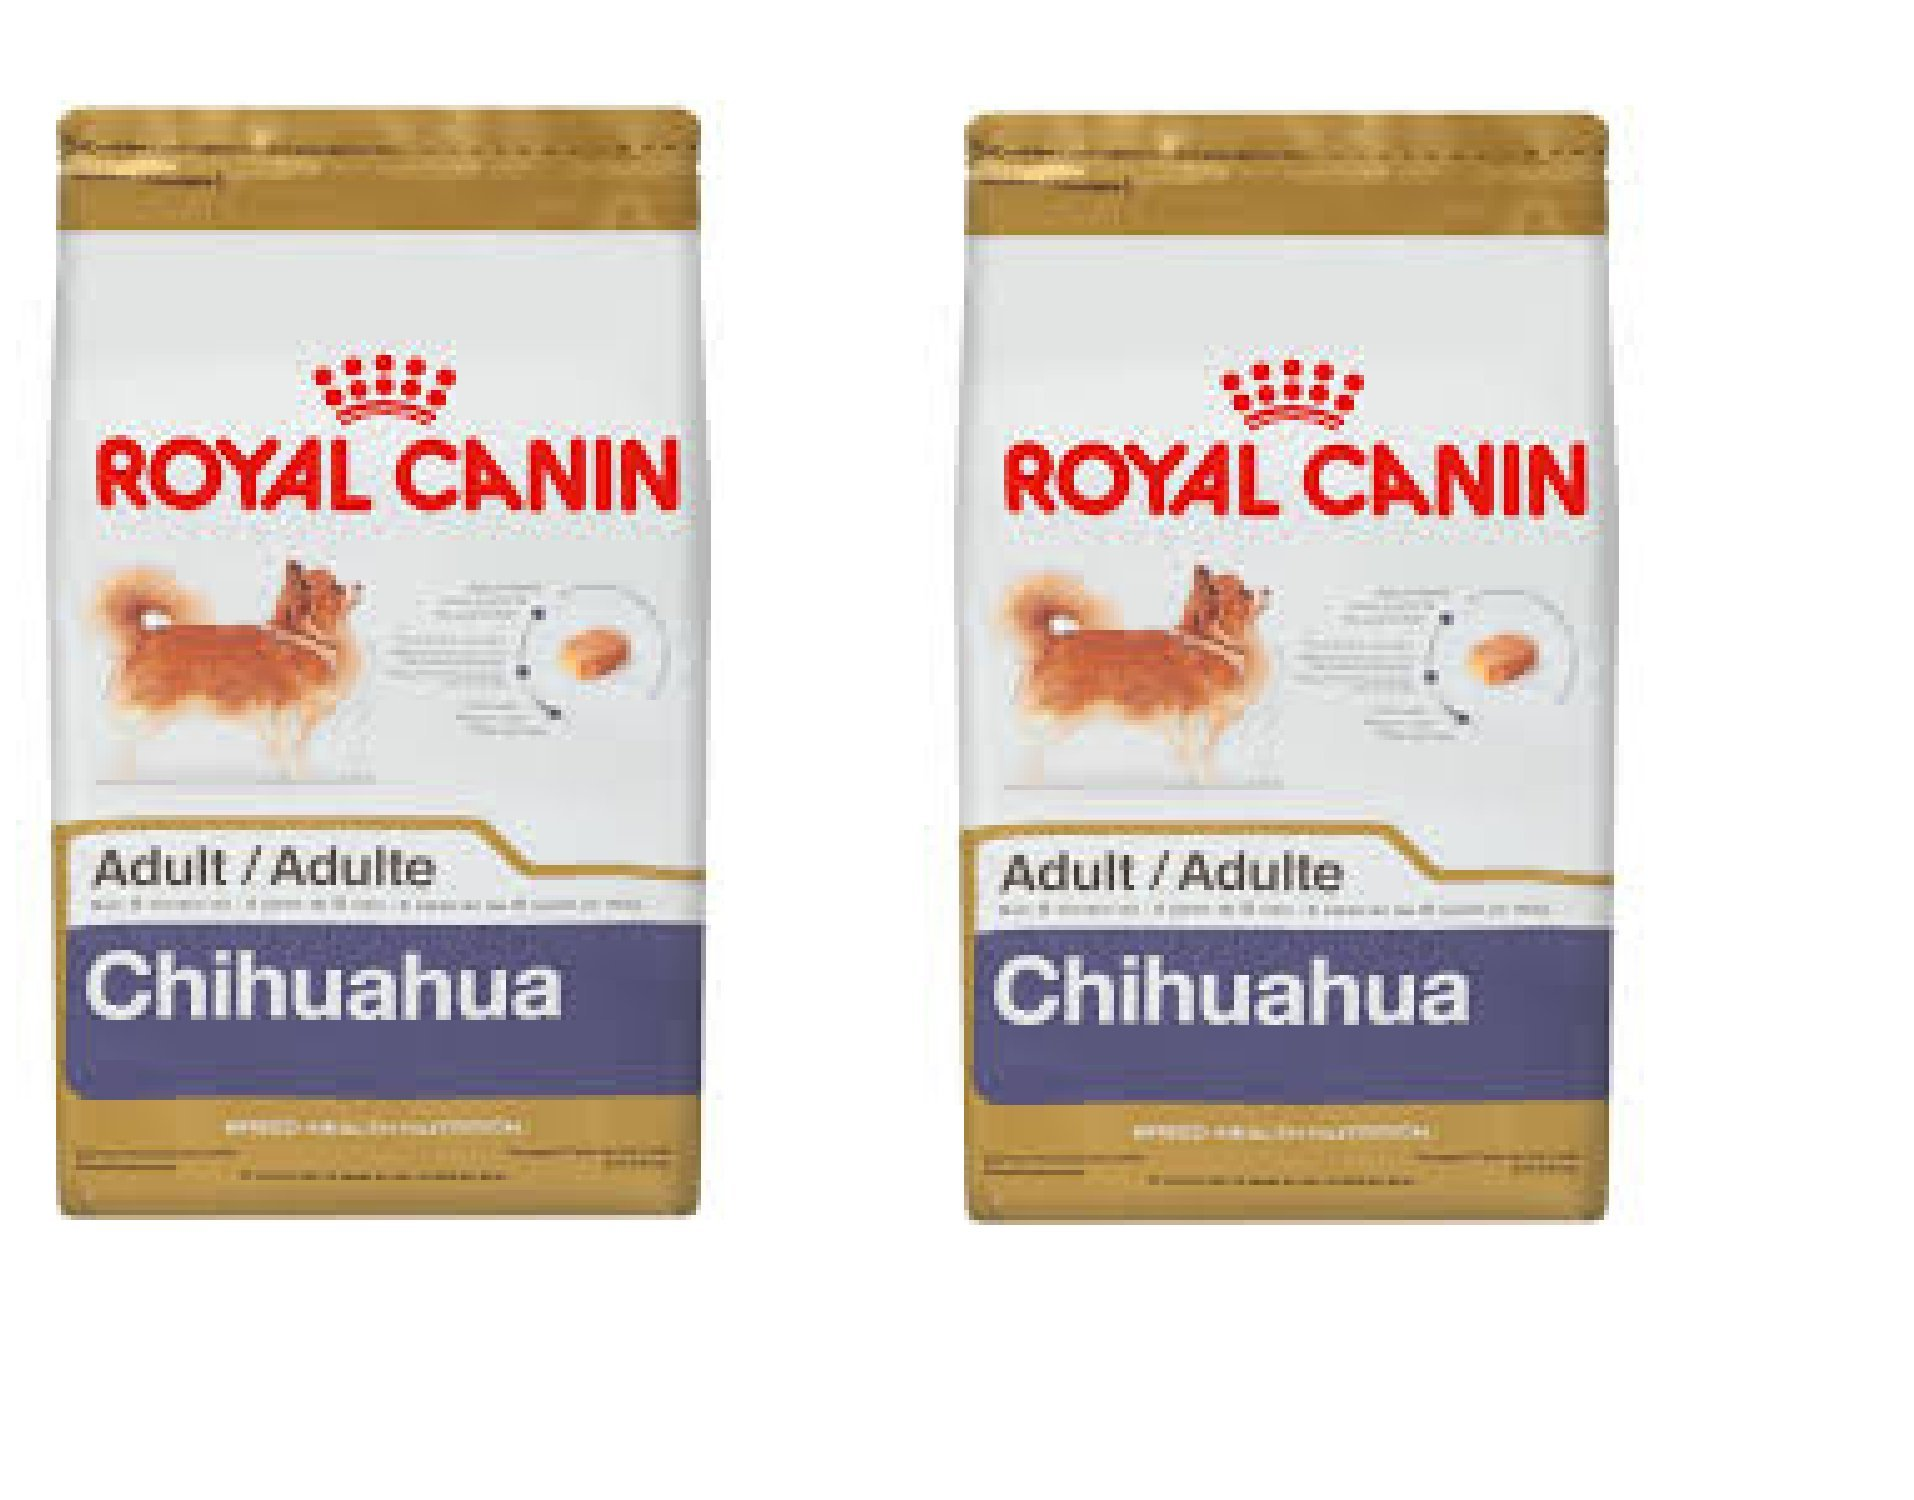 Royal Canin Chihuahua Adult Dry Dog Food 3KG x 2 bags = 6kg